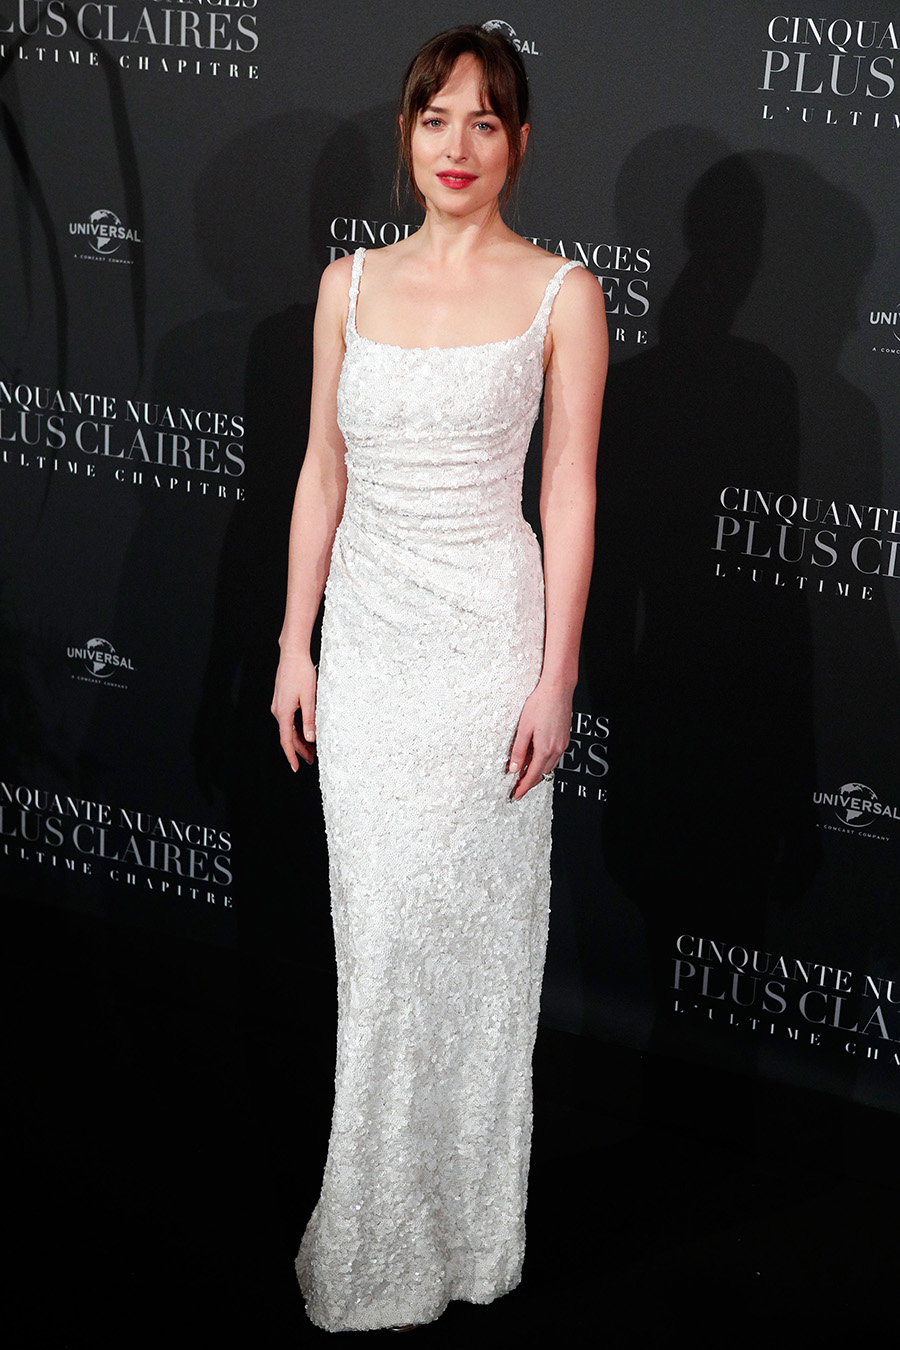 Dakota-Johnson-50-sombras-liberadas. Dakota Johnson se viste de novia minimalista y elegante